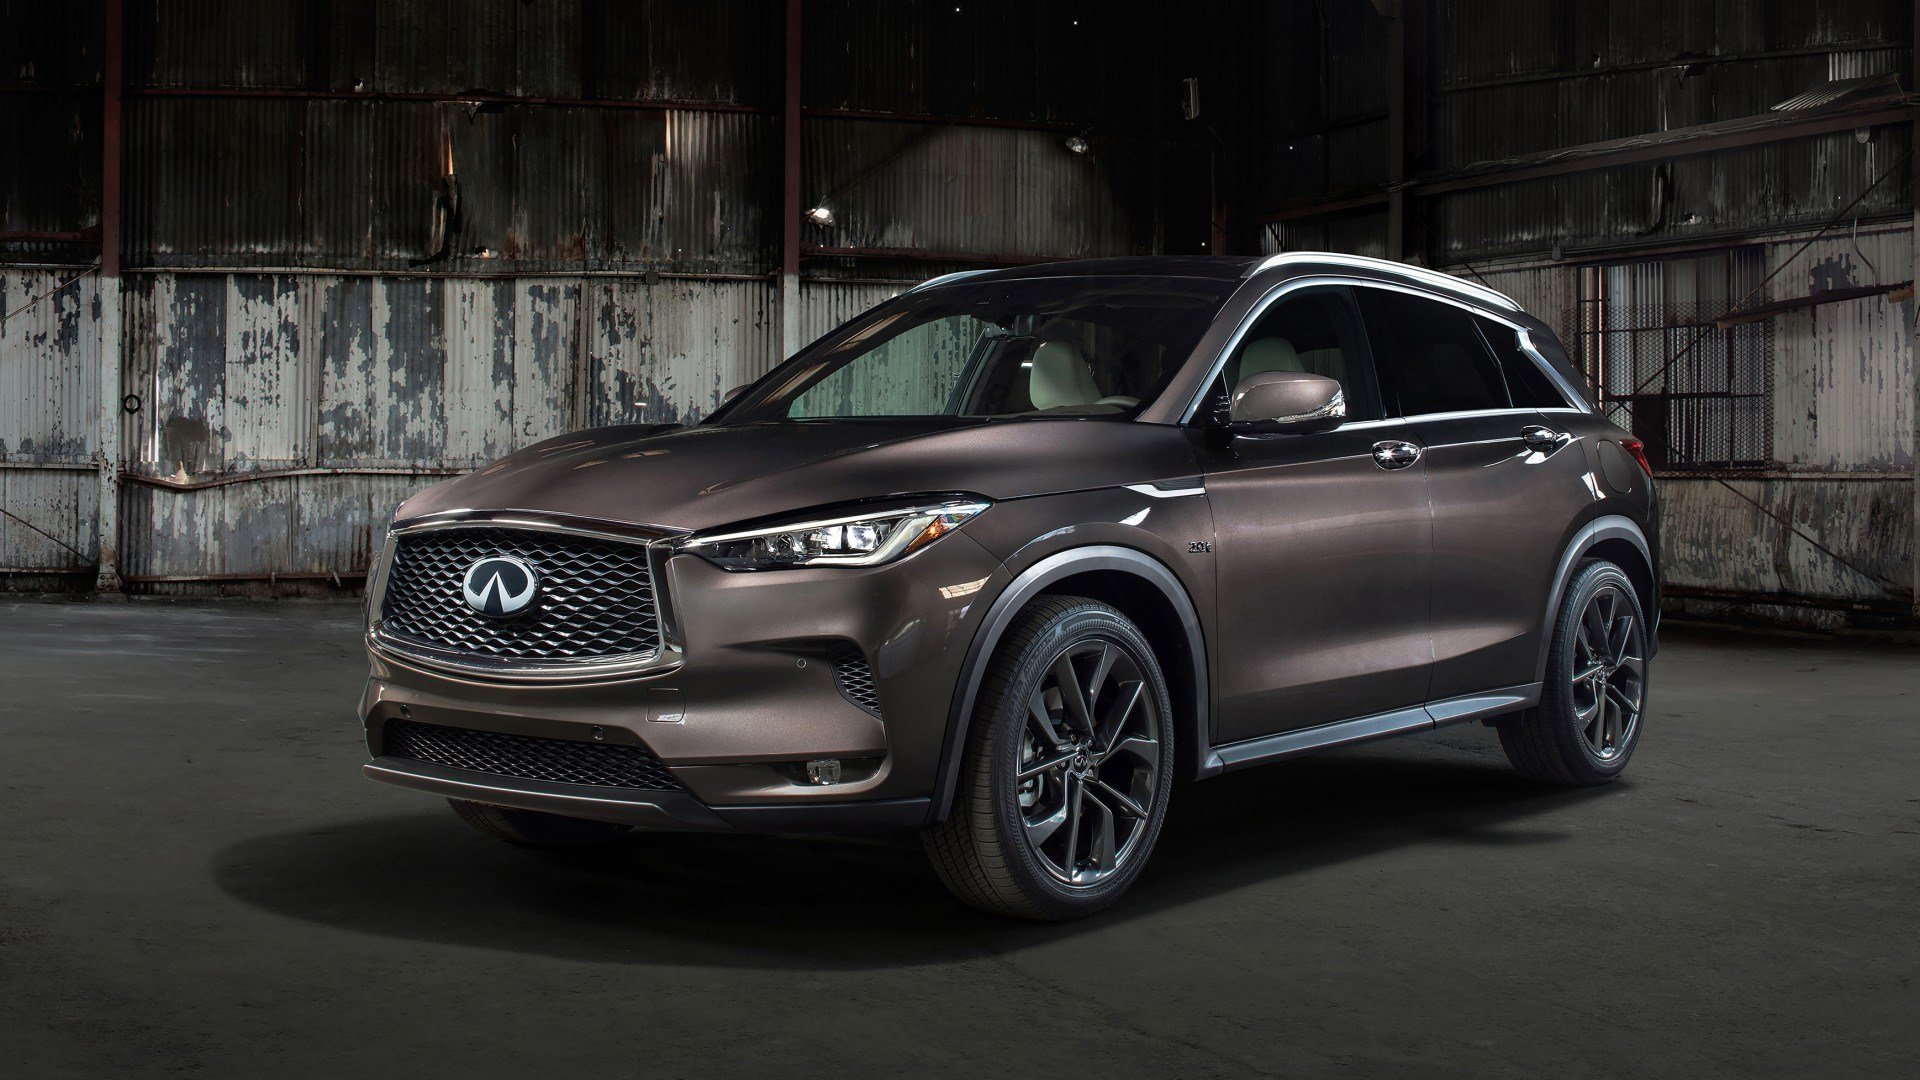 New 2019 Infiniti Qx50 Wallpaper Hd Car Wallpapers Id 9185 On This Month